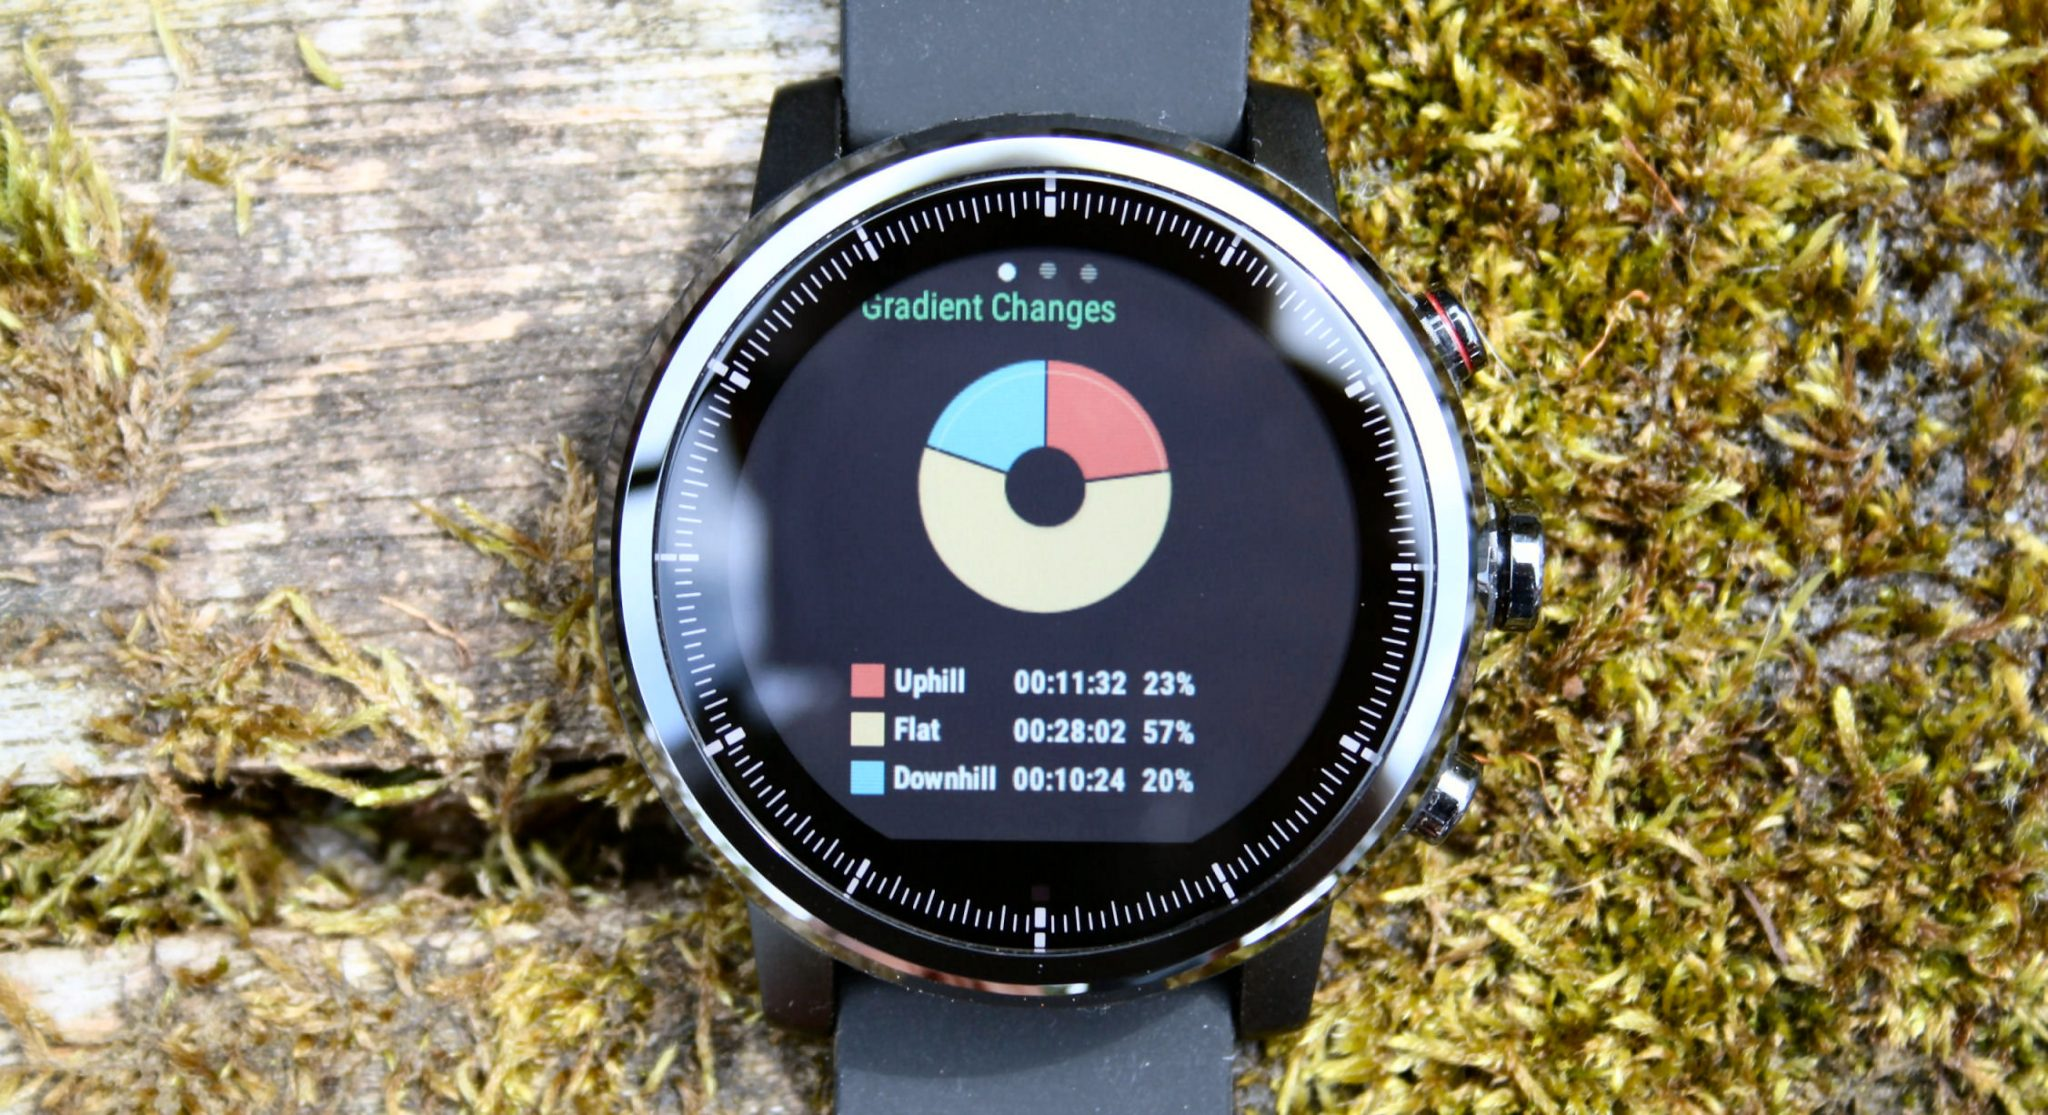 97854de42a5 ▷ Amazfit STRATOS Review - Triathlon Watch with Music the5krunner